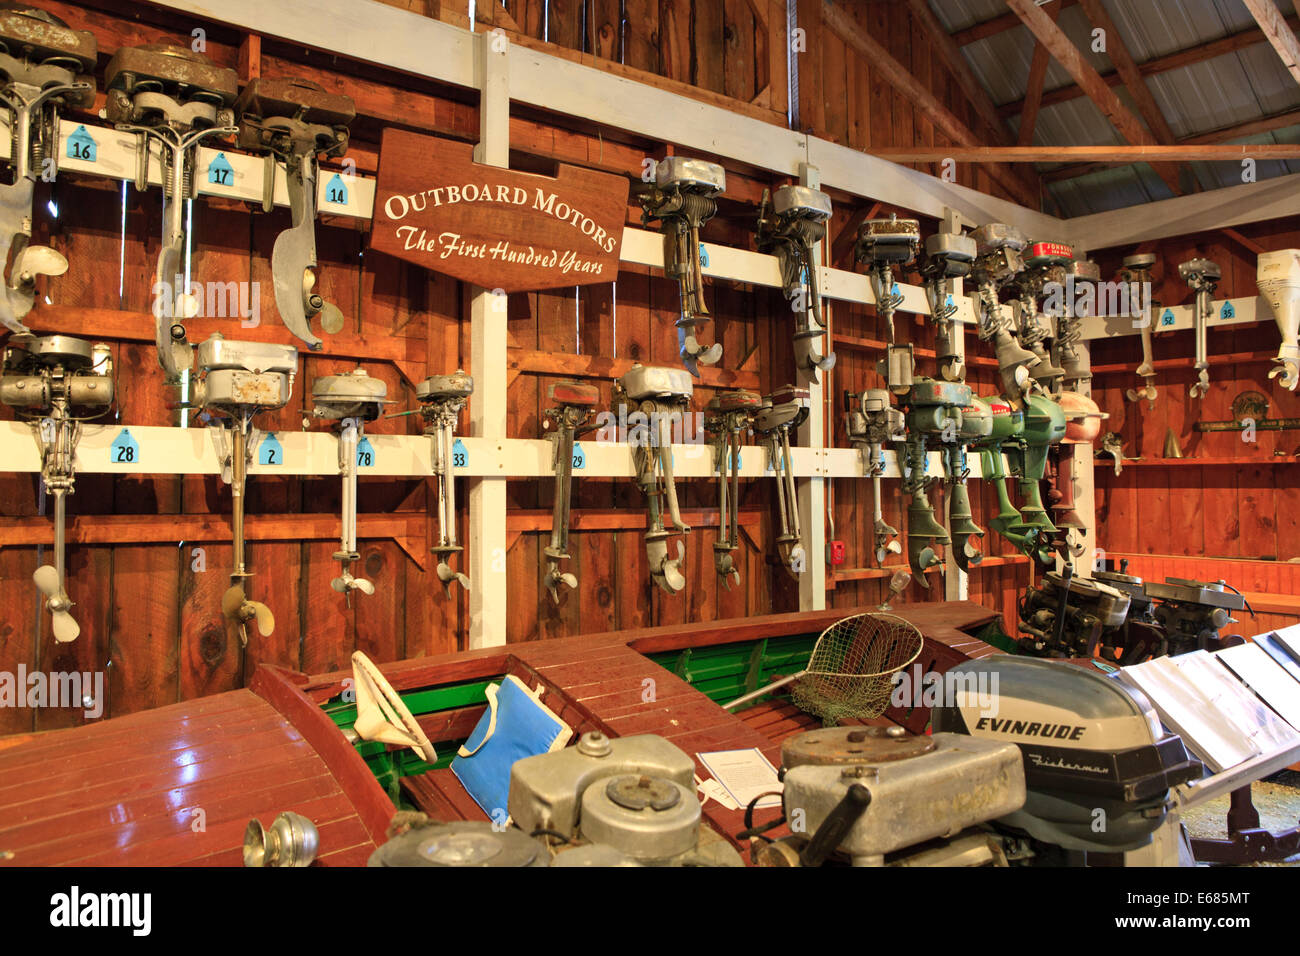 Various outboard boat motors on display at the Lake Champlain Maritime Museum in Vergennes, Vermont - Stock Image